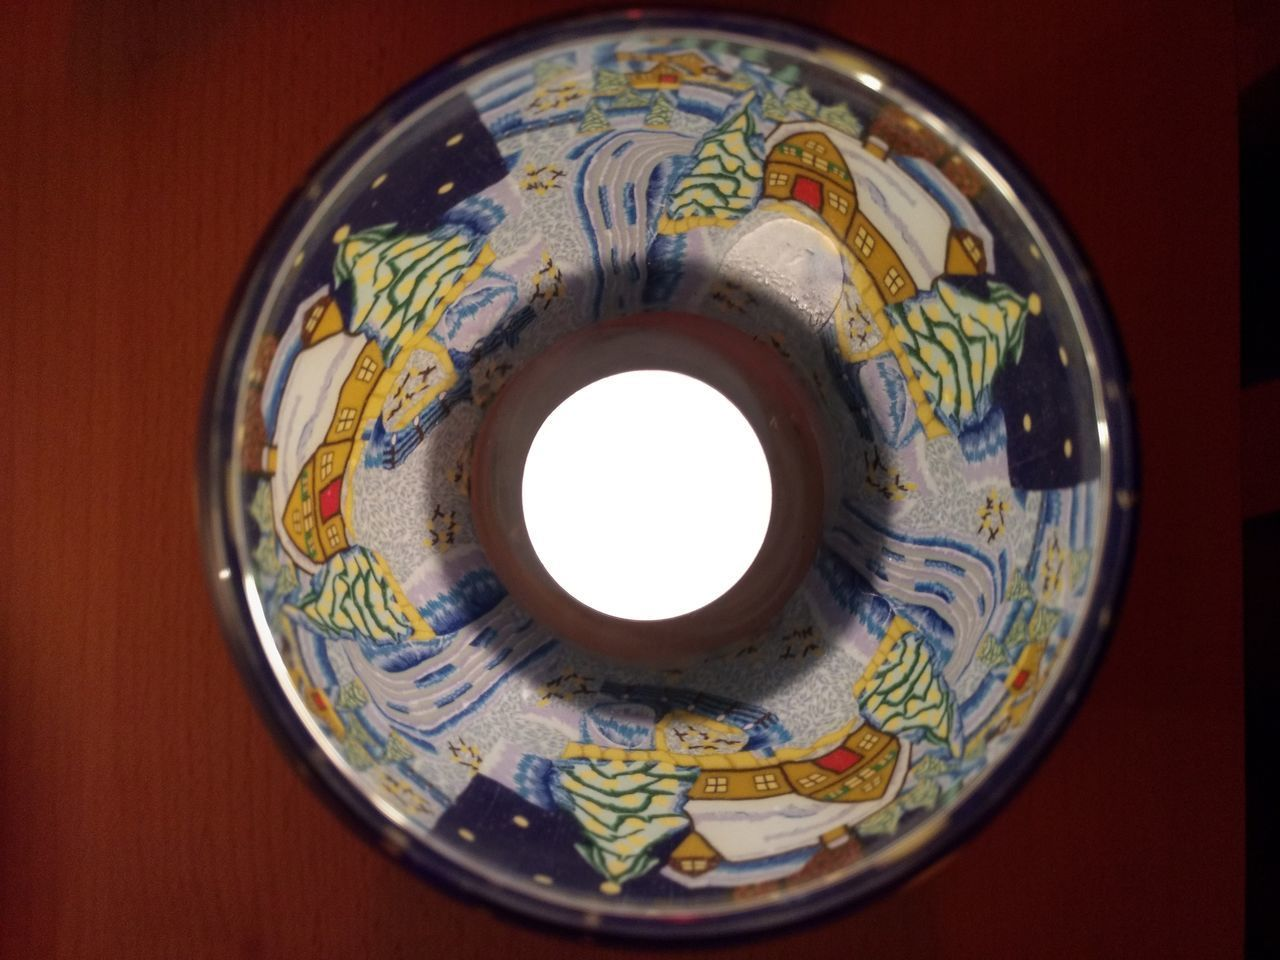 DIRECTLY ABOVE SHOT OF BOWL ON TABLE